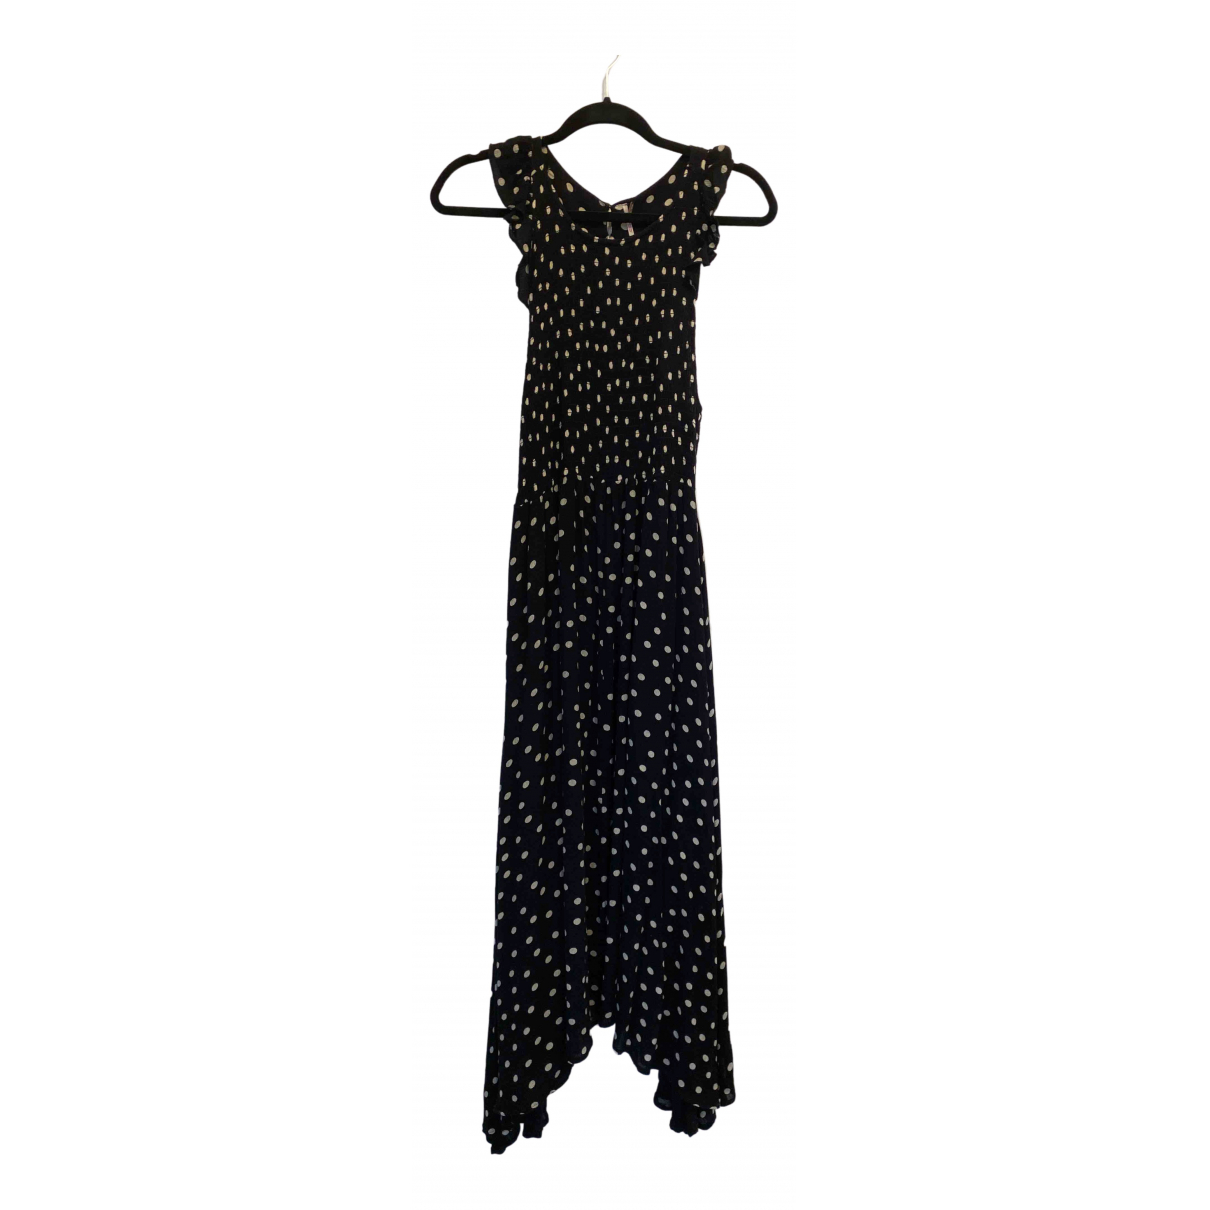 Free People \N Black Cotton - elasthane dress for Women 4 US